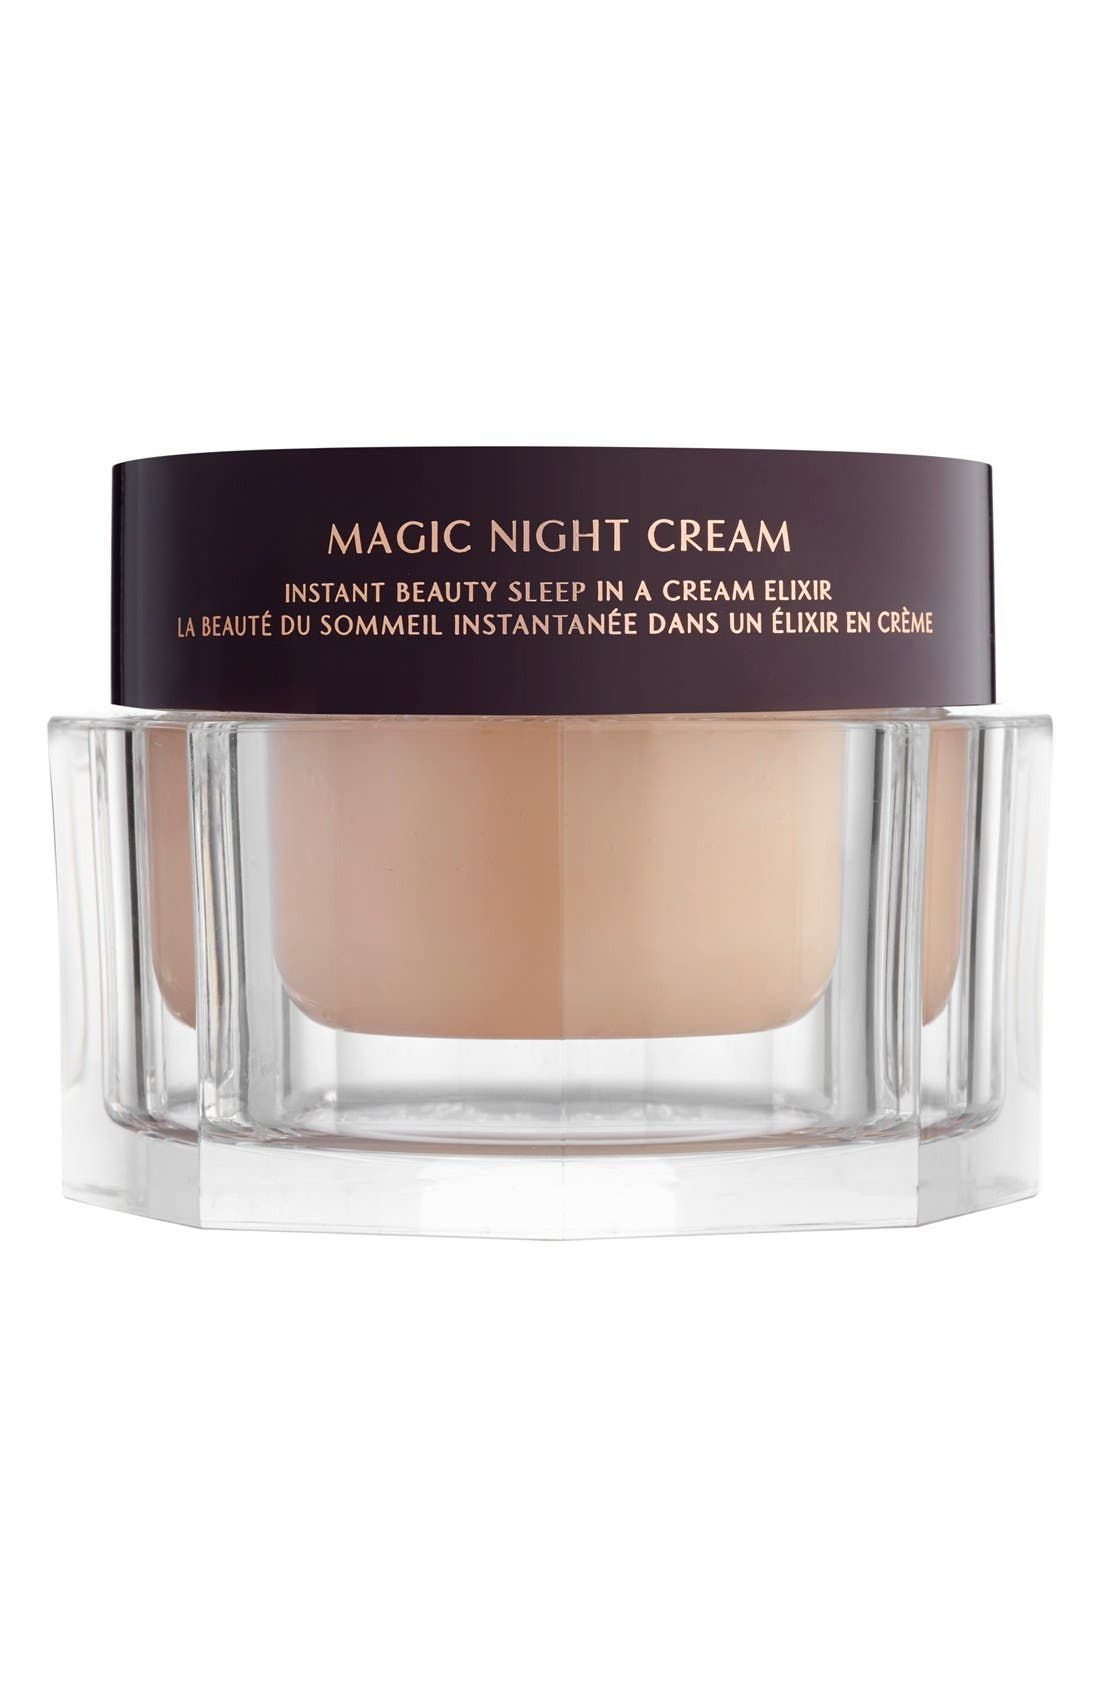 Charlotte Tilbury 'Magic Night Rescue Cream' Intense Firming, Plumping Balm-Elixir